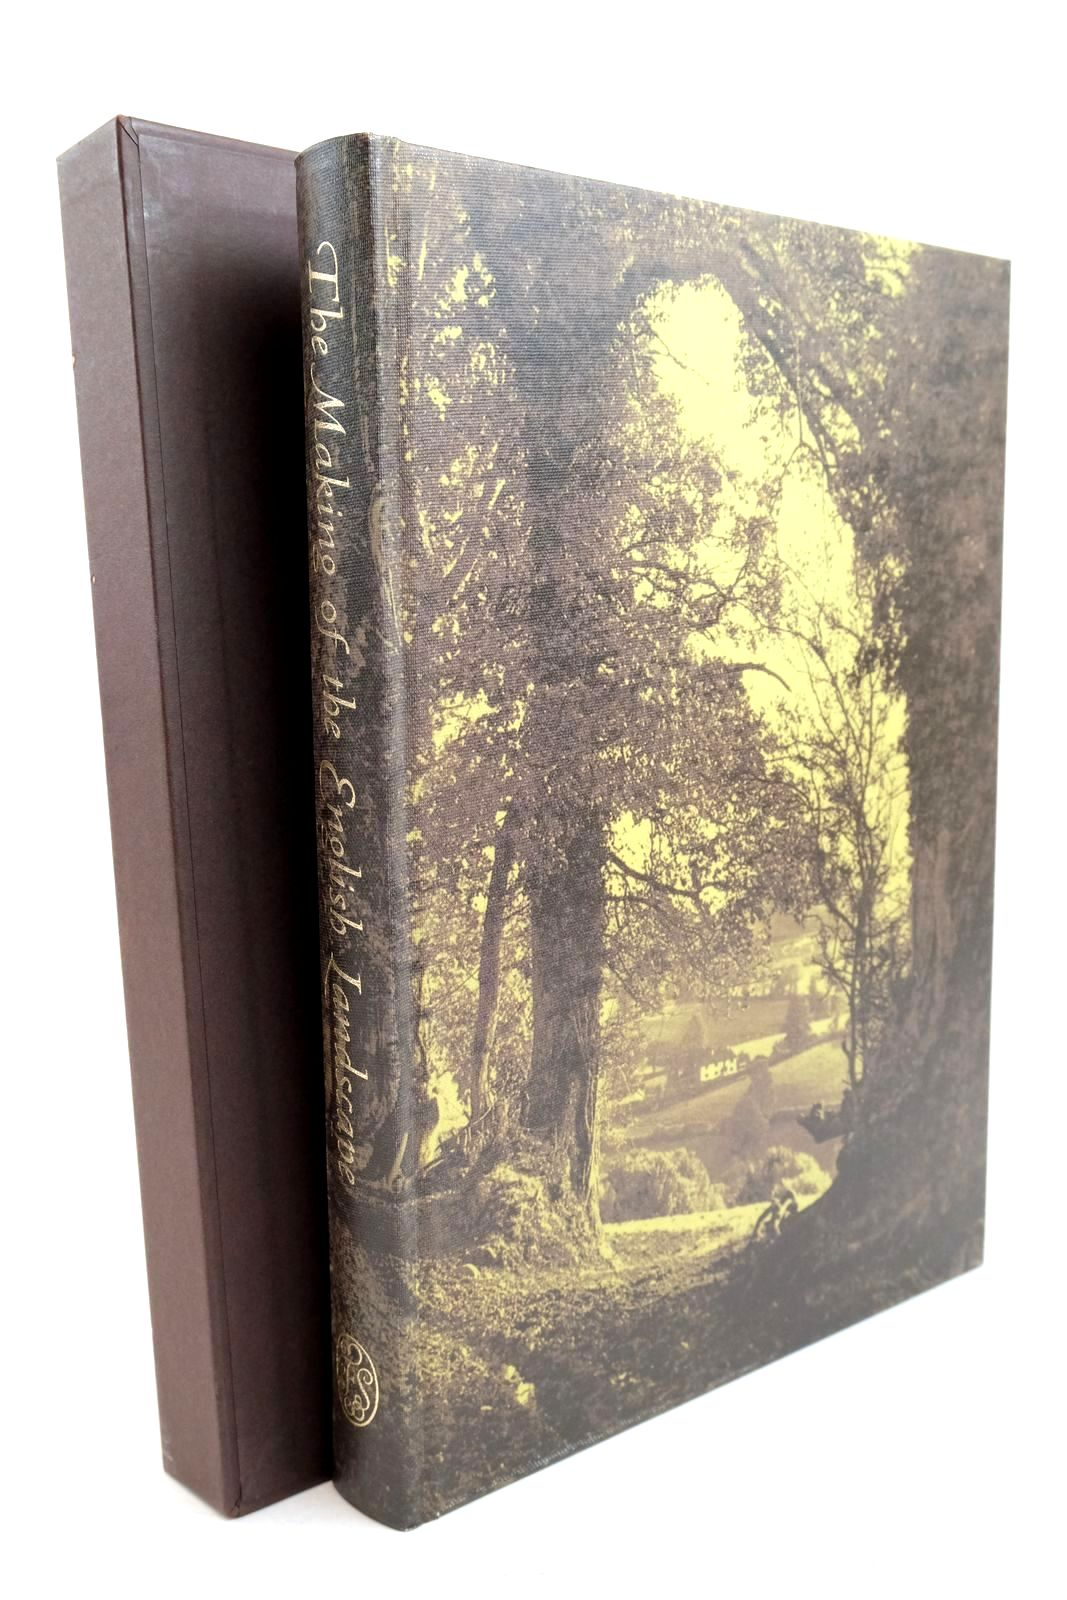 Photo of THE MAKING OF THE ENGLISH LANDSCAPE written by Hoskins, W.G. published by Folio Society (STOCK CODE: 1321045)  for sale by Stella & Rose's Books